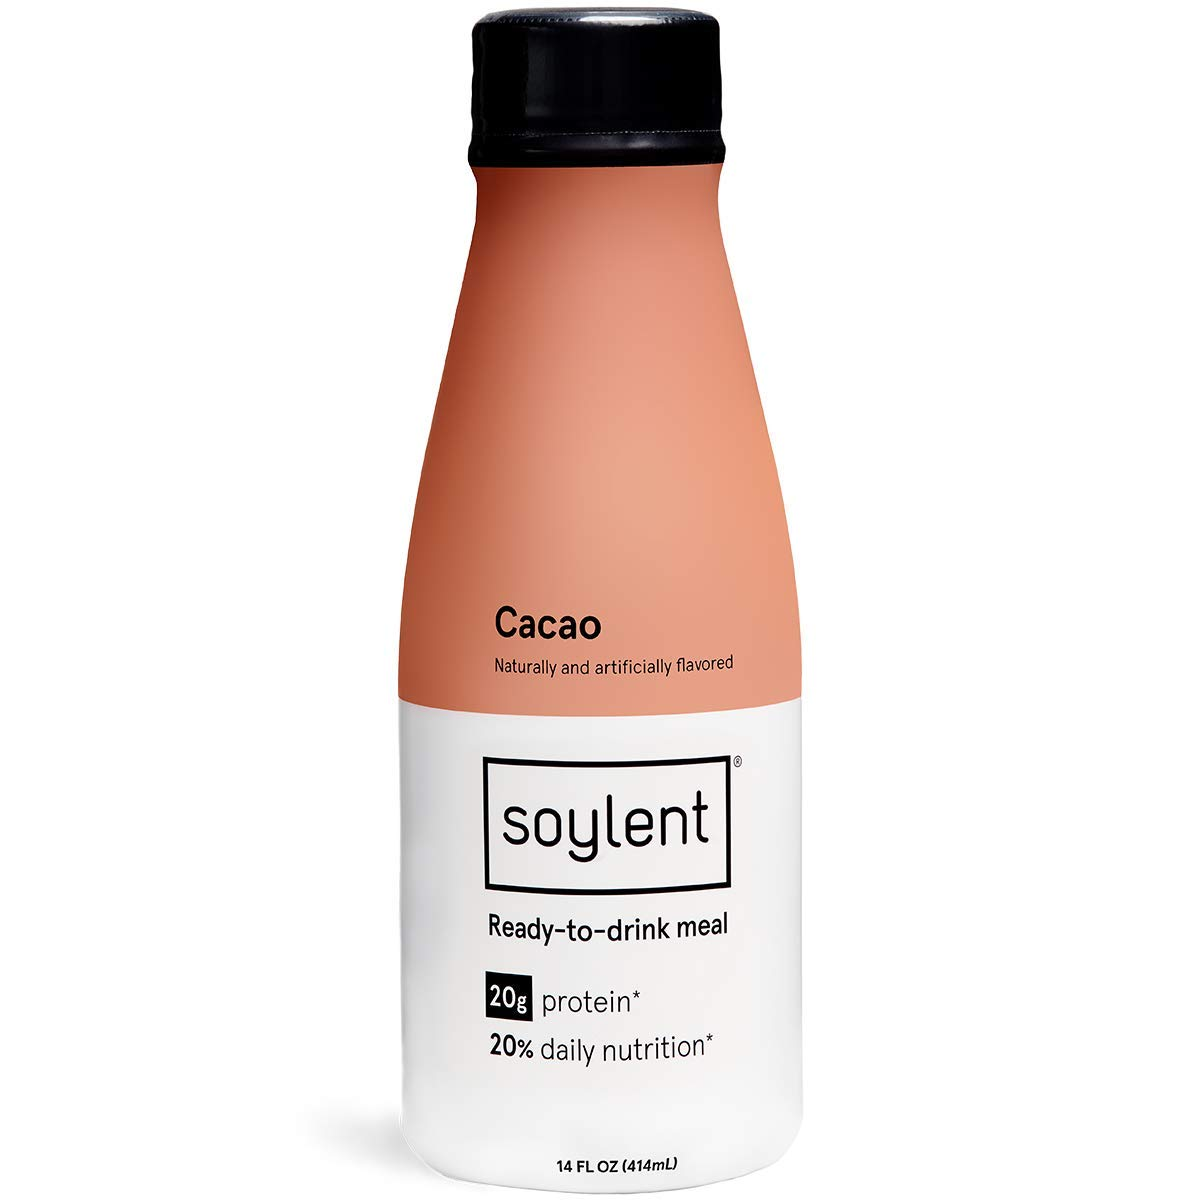 Cacao Soylent Meal Replacement Shake